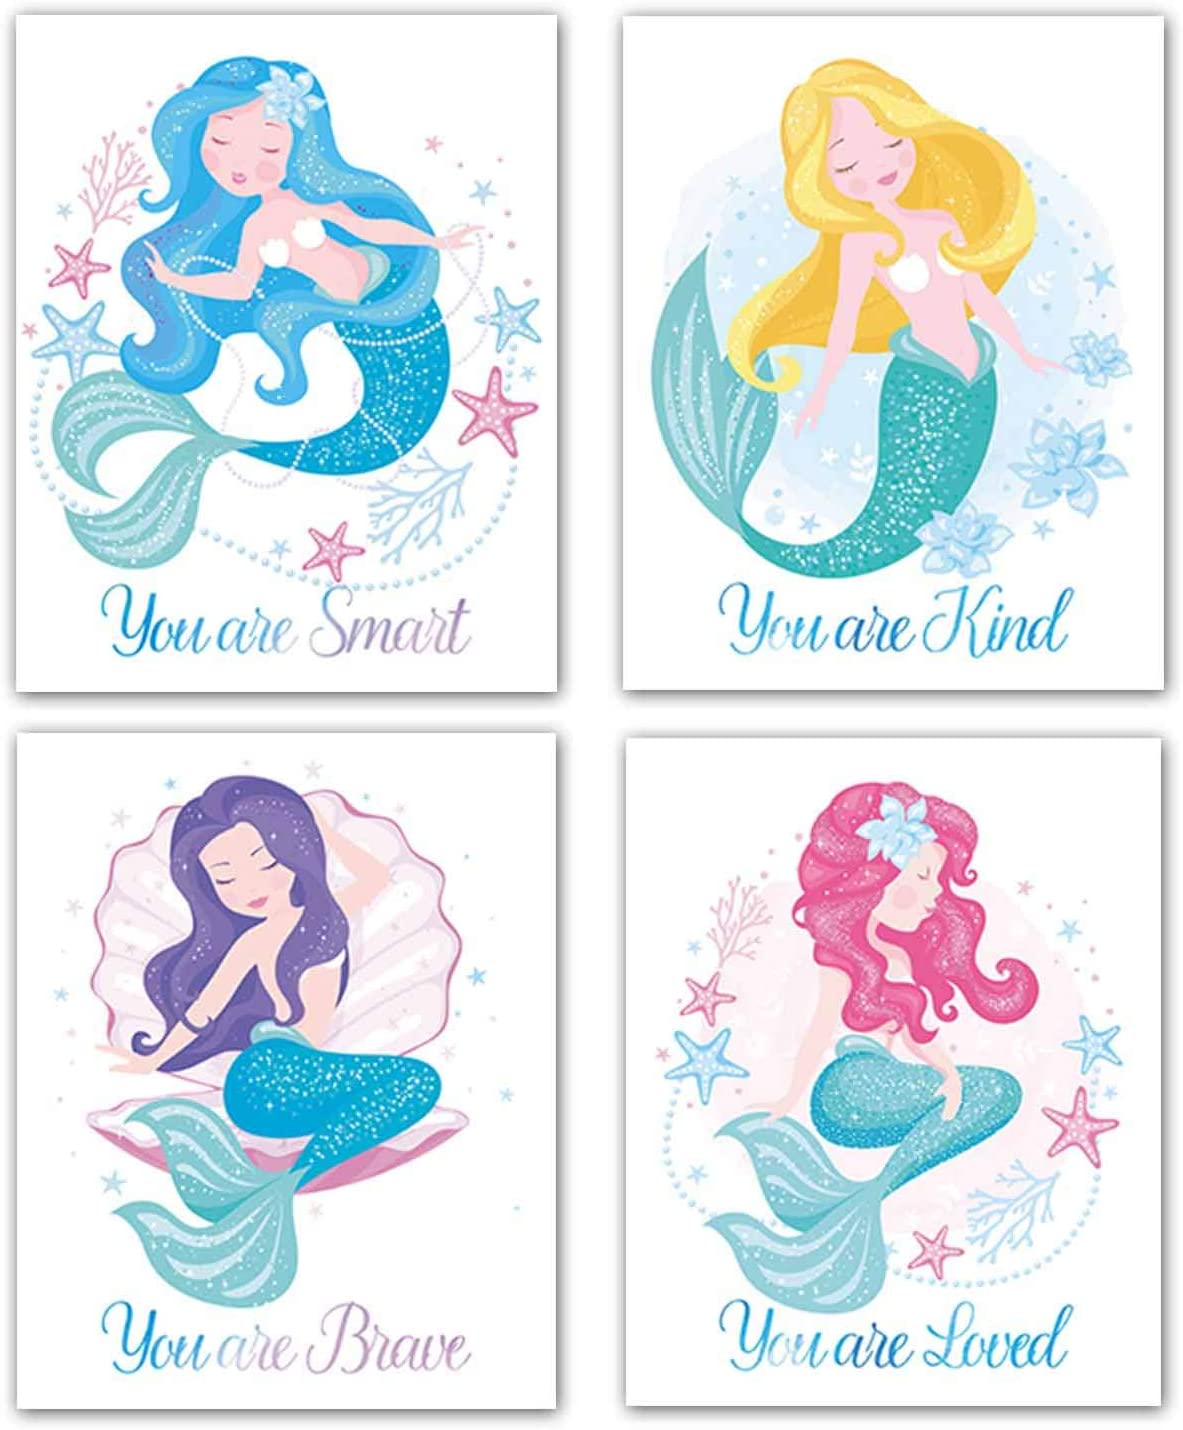 """VOUORON Unframed Watercolor Nursery Mermaid Art Wall Decor Posters Set of 4 Inspirational Ocean Mermaid Picture Art Print for Girls Bedroom Bathroom Modern Home Wall Decor (8""""X10"""" Canvas Picture)"""